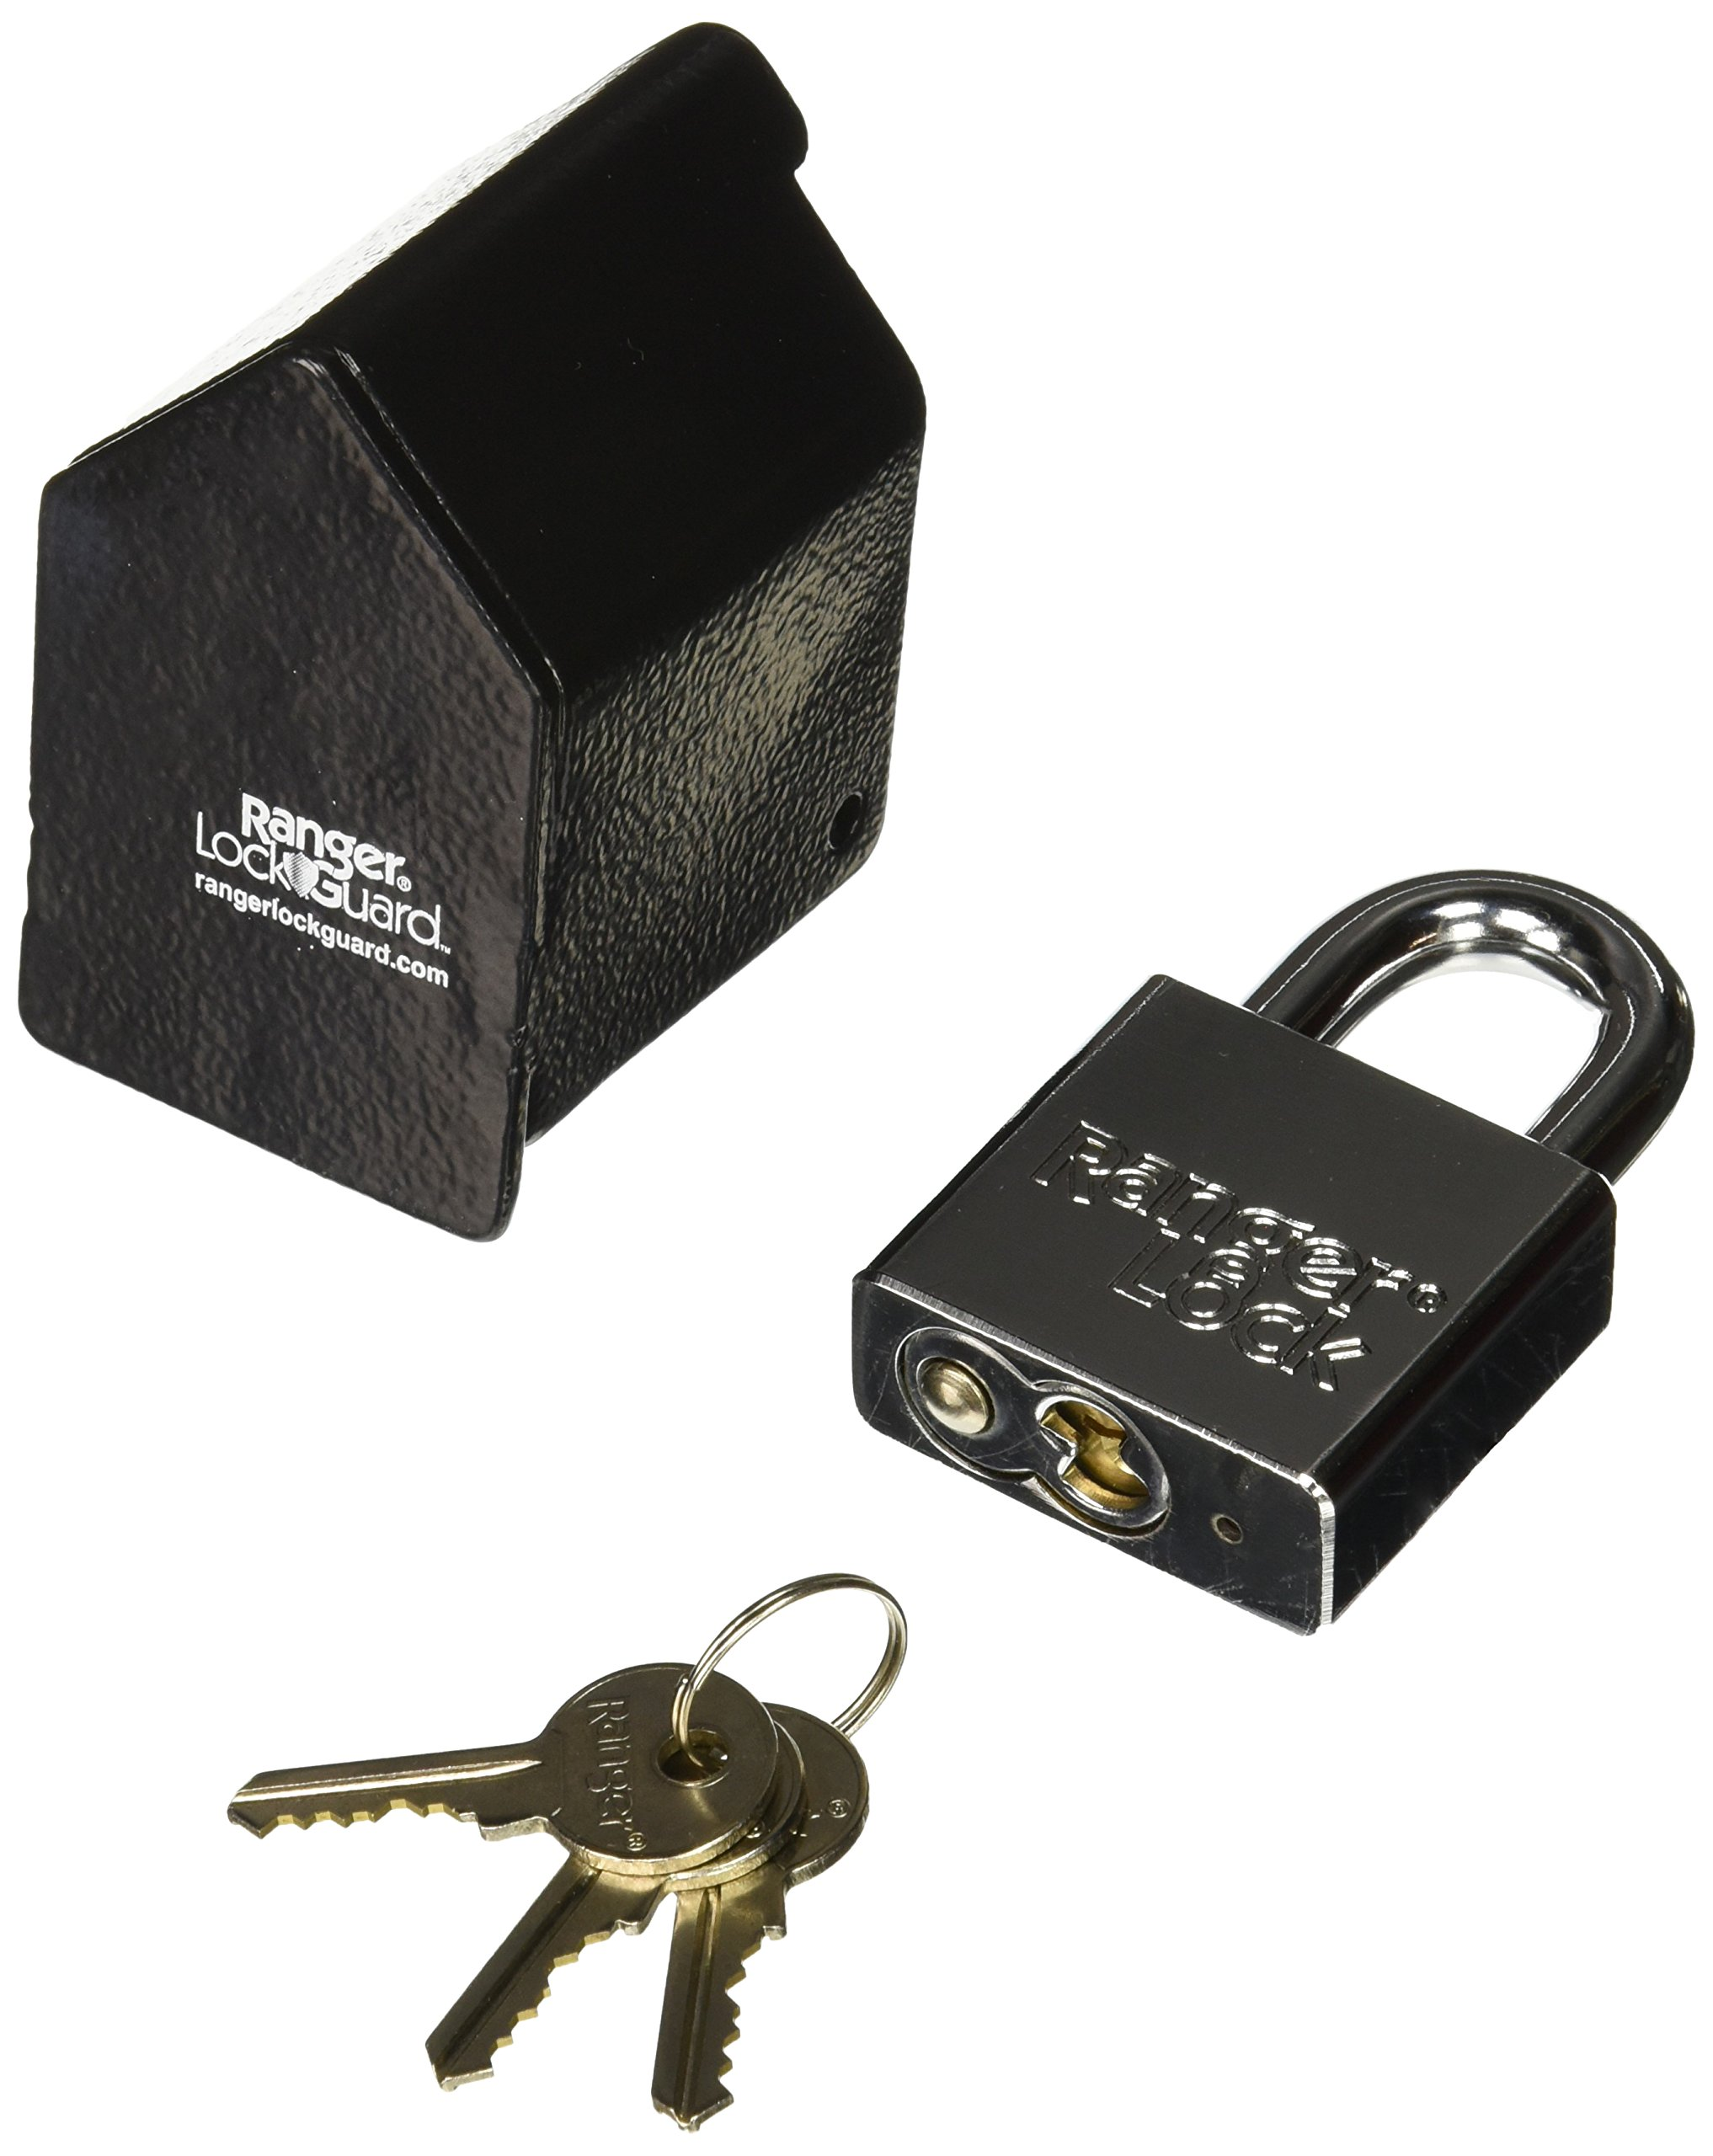 Ranger Lock RGST-1L Standard Lock Guard with 1-Inch Hardened Steel Lock